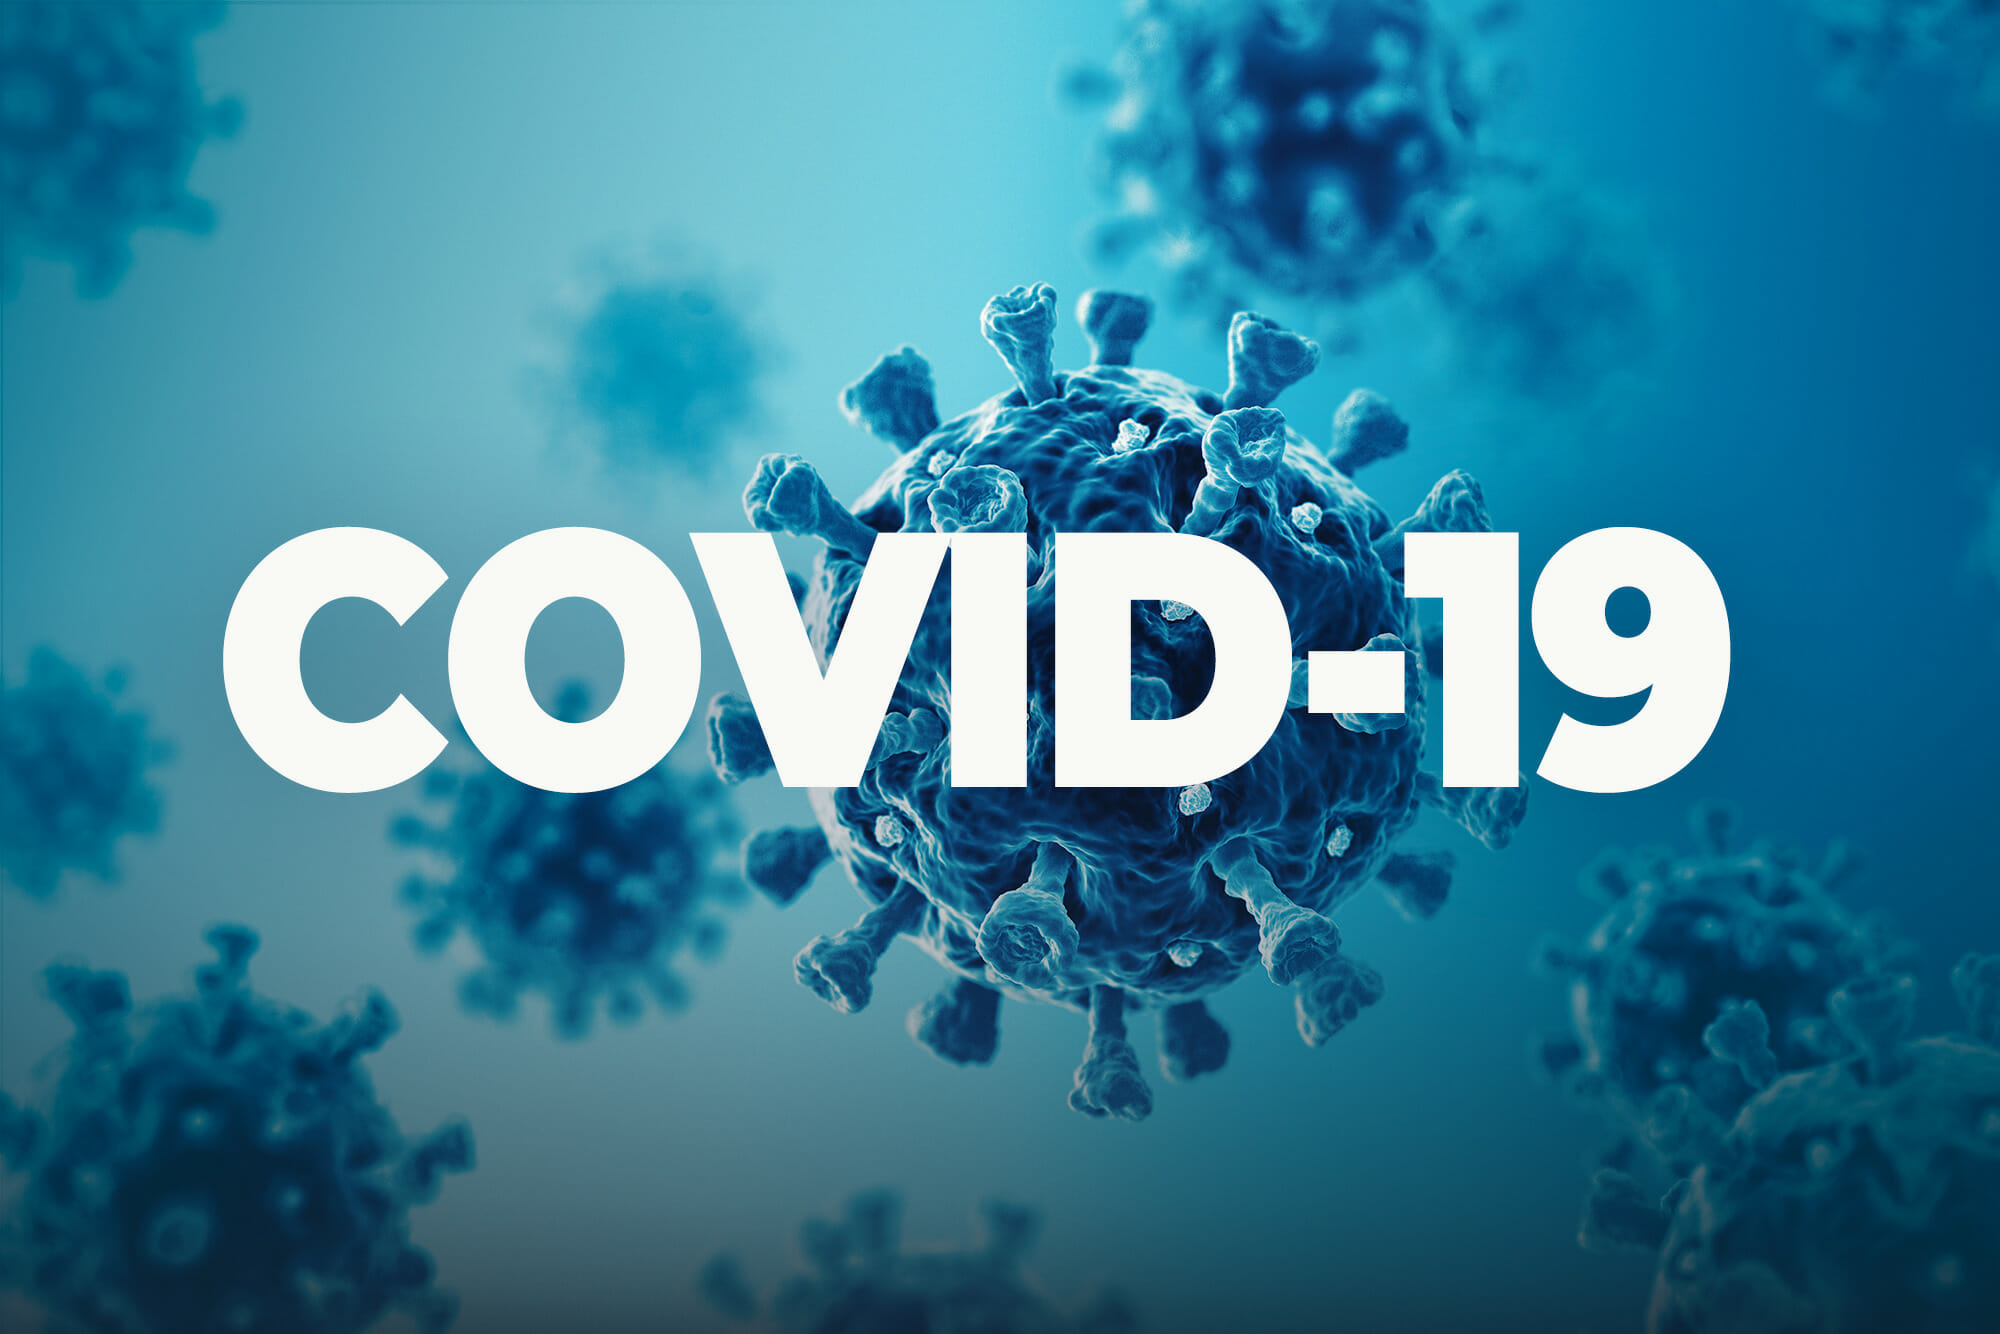 All the very latest COVID-19 news